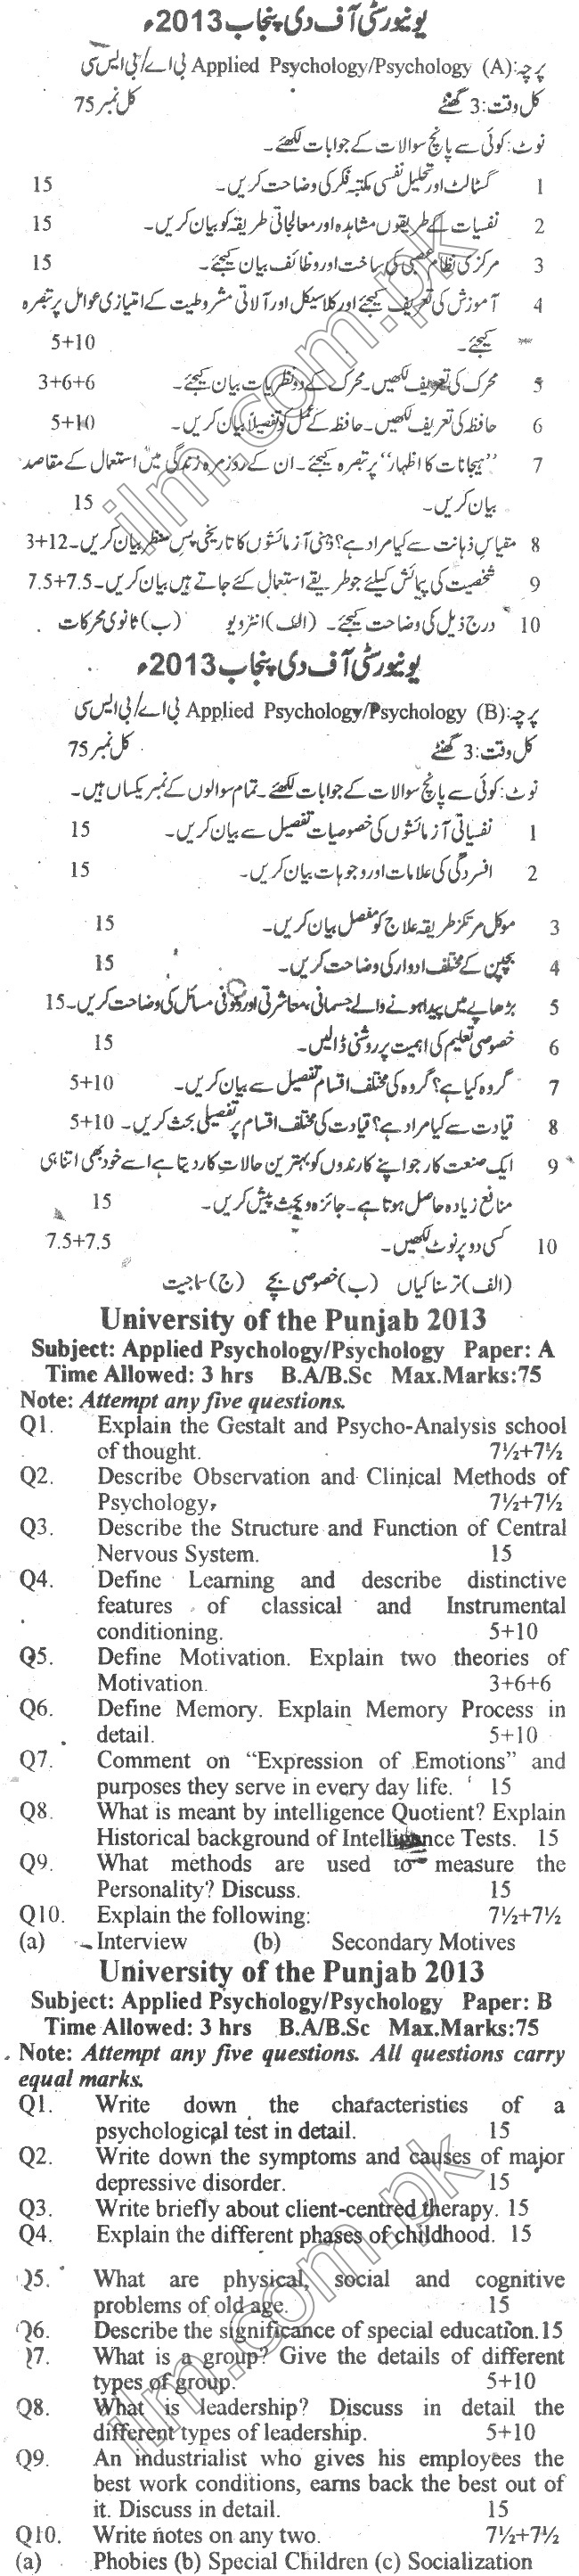 how to write a good psychology paper Good writing benefits both students and teachers i am a big fan of proper papers i had a teacher in 12th grade that gave me an assignment to write a paper.